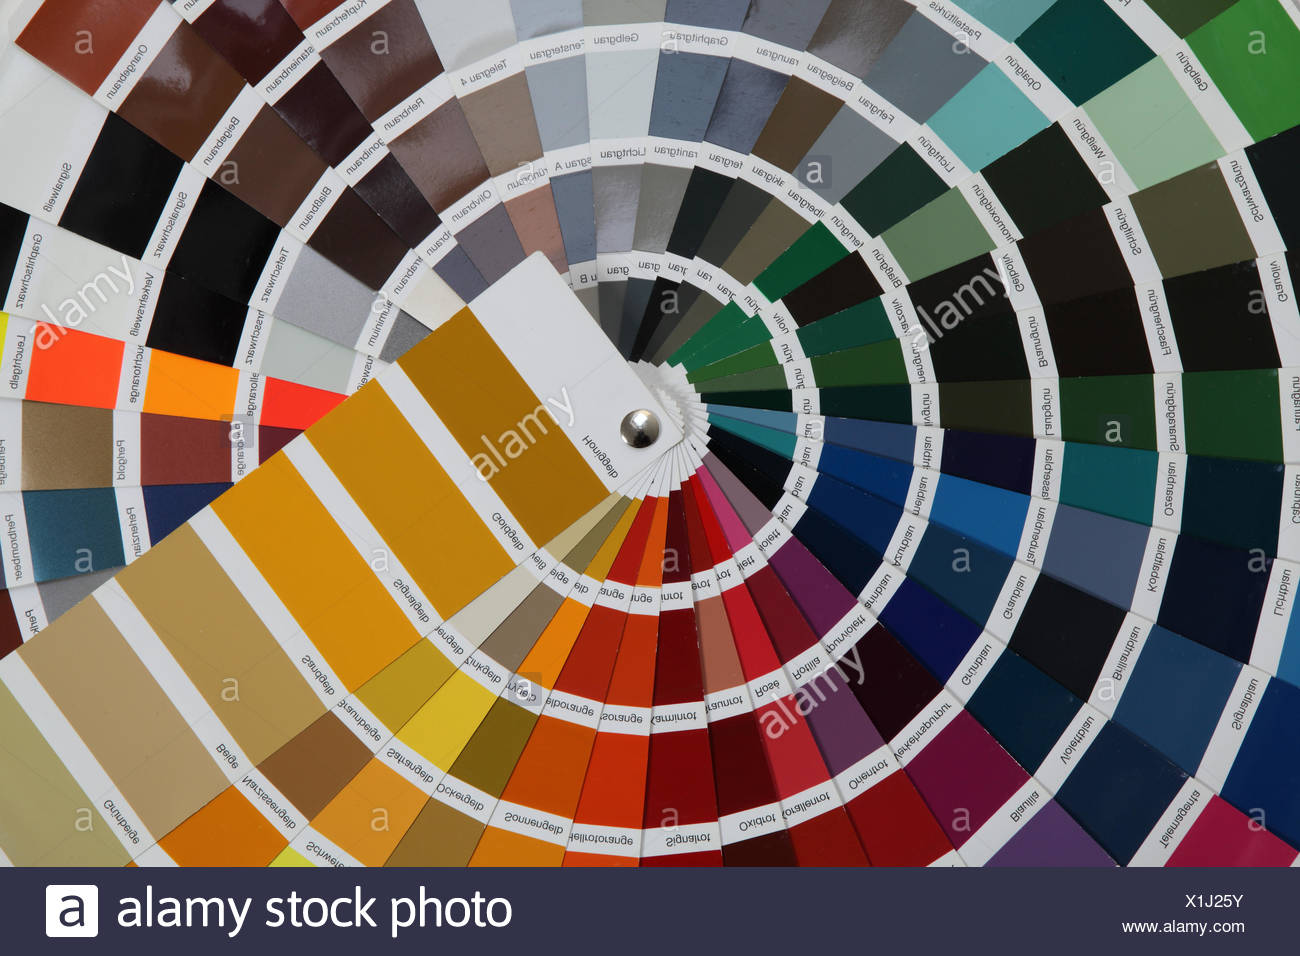 paint renovation do-it-yourself enthusiast - Stock Image